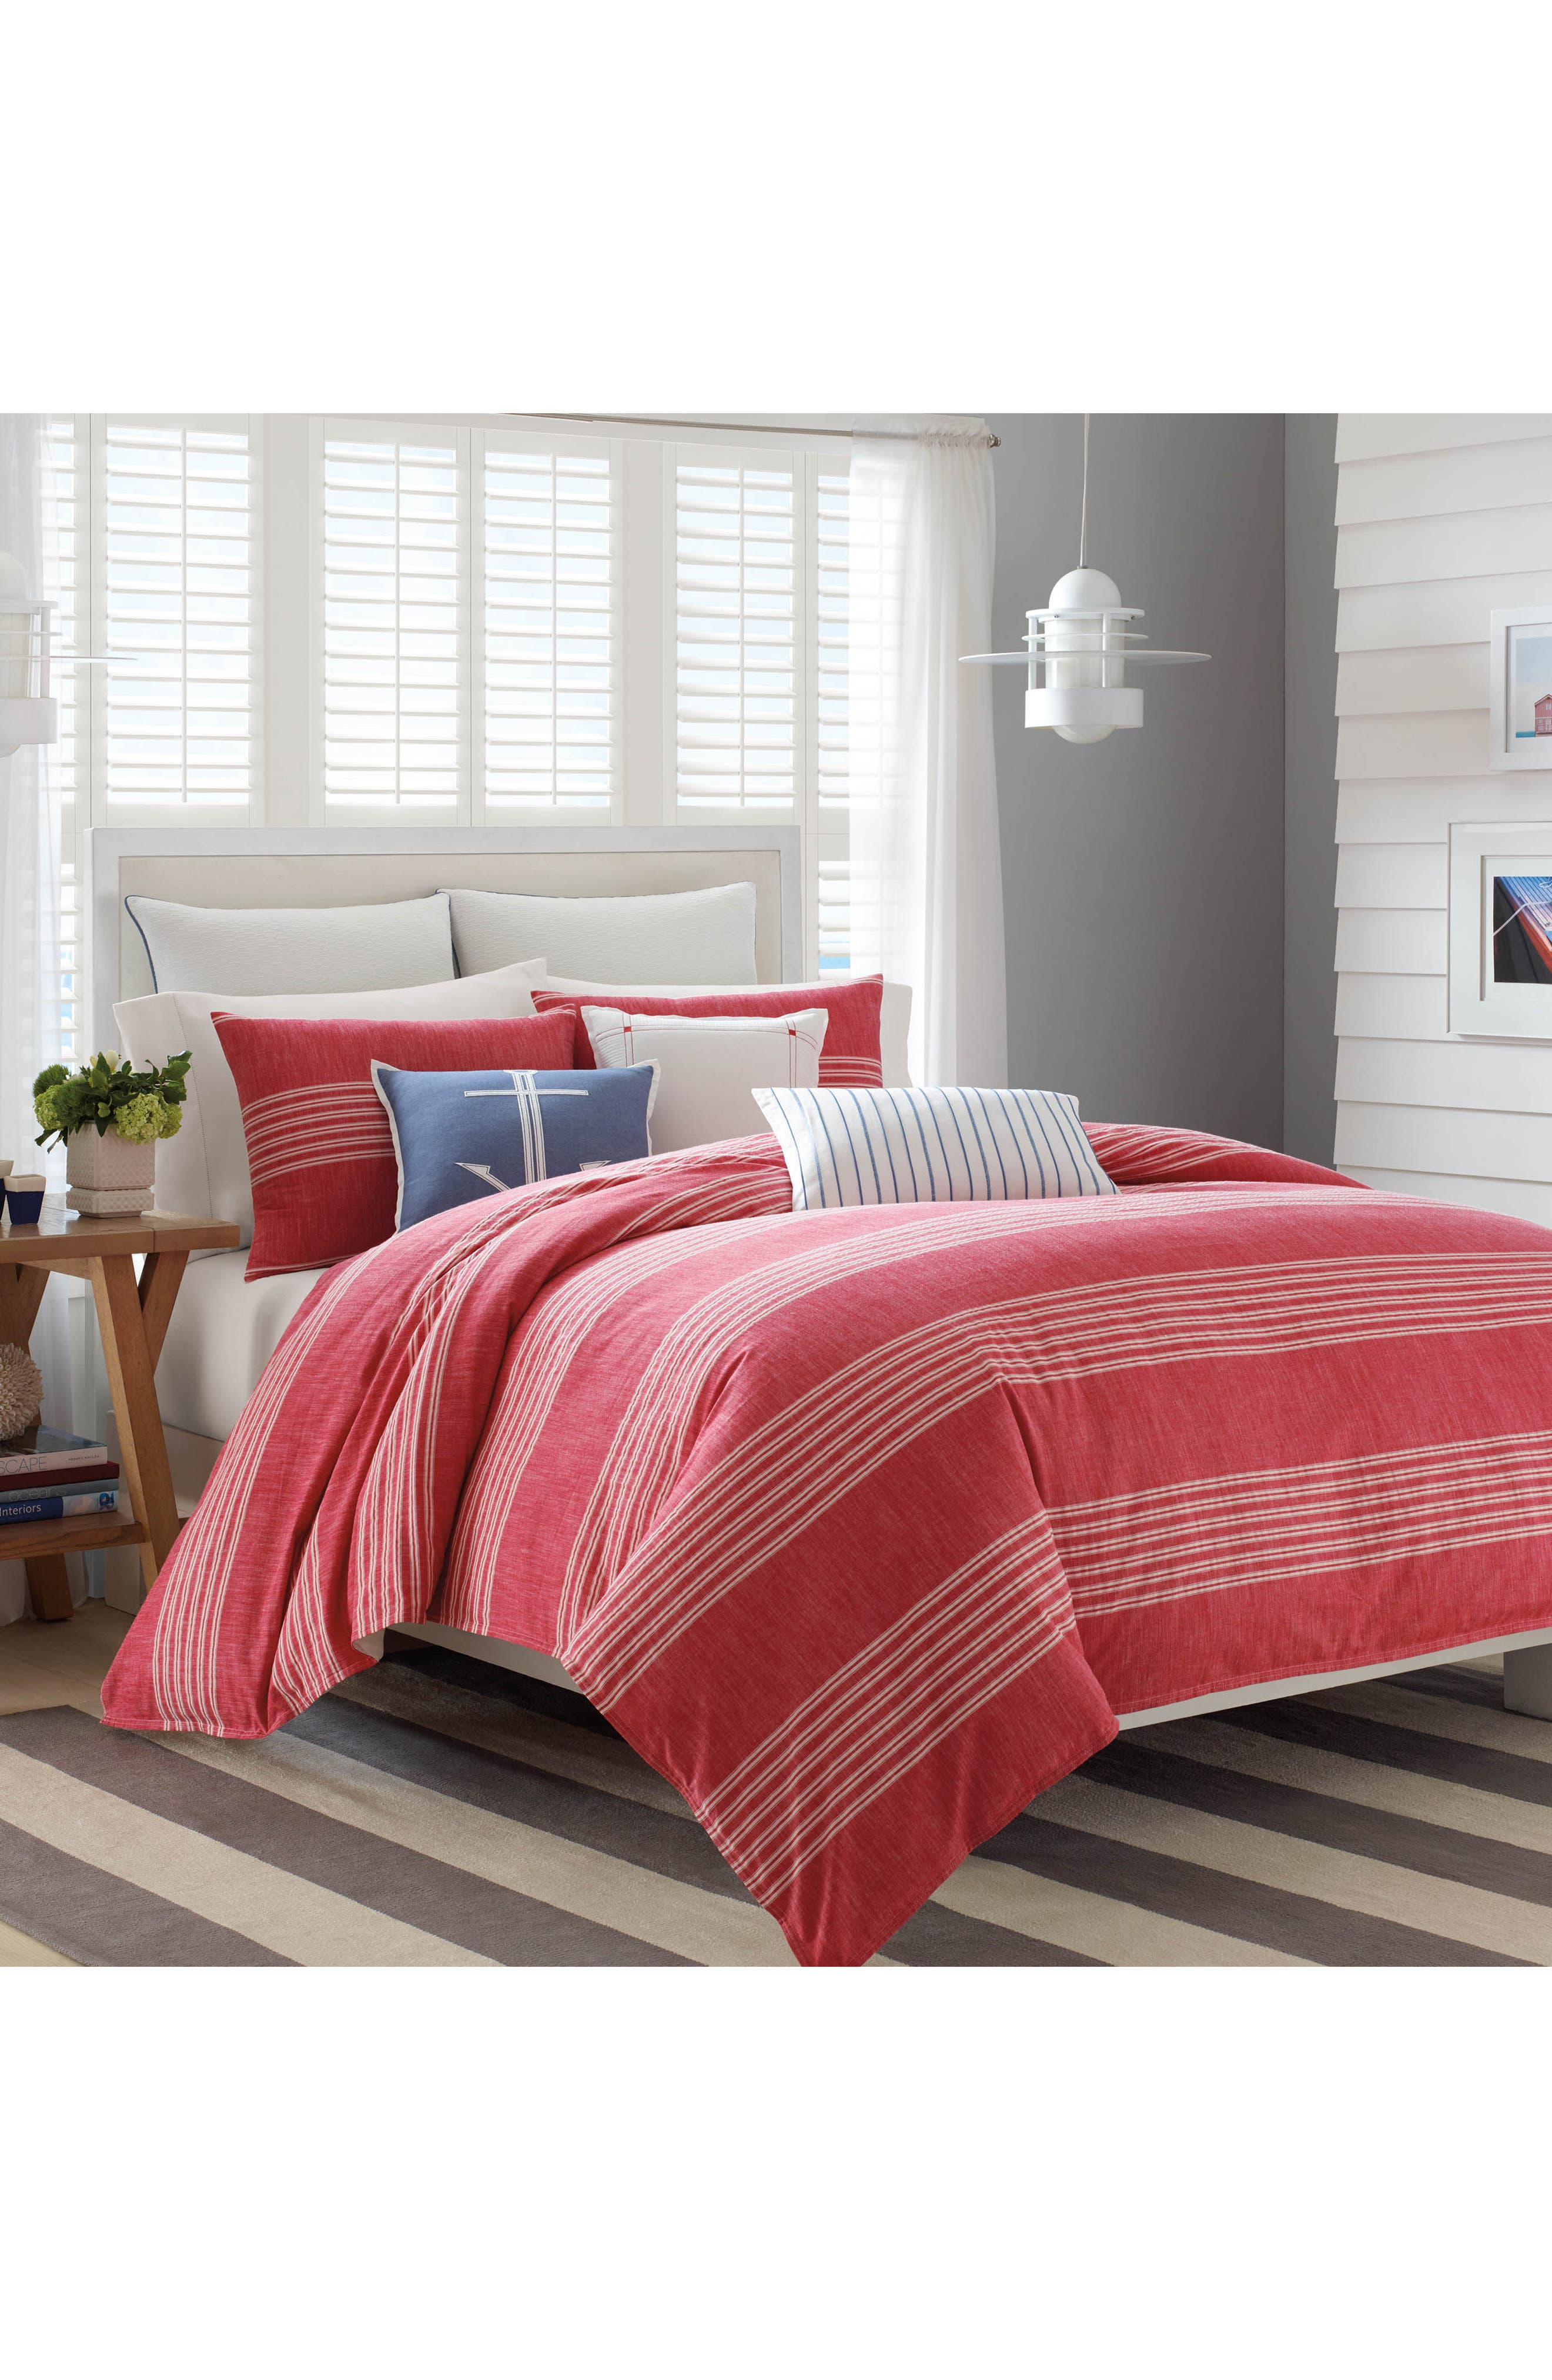 Trawler Duvet Cover & Sham Set,                             Alternate thumbnail 2, color,                             Red